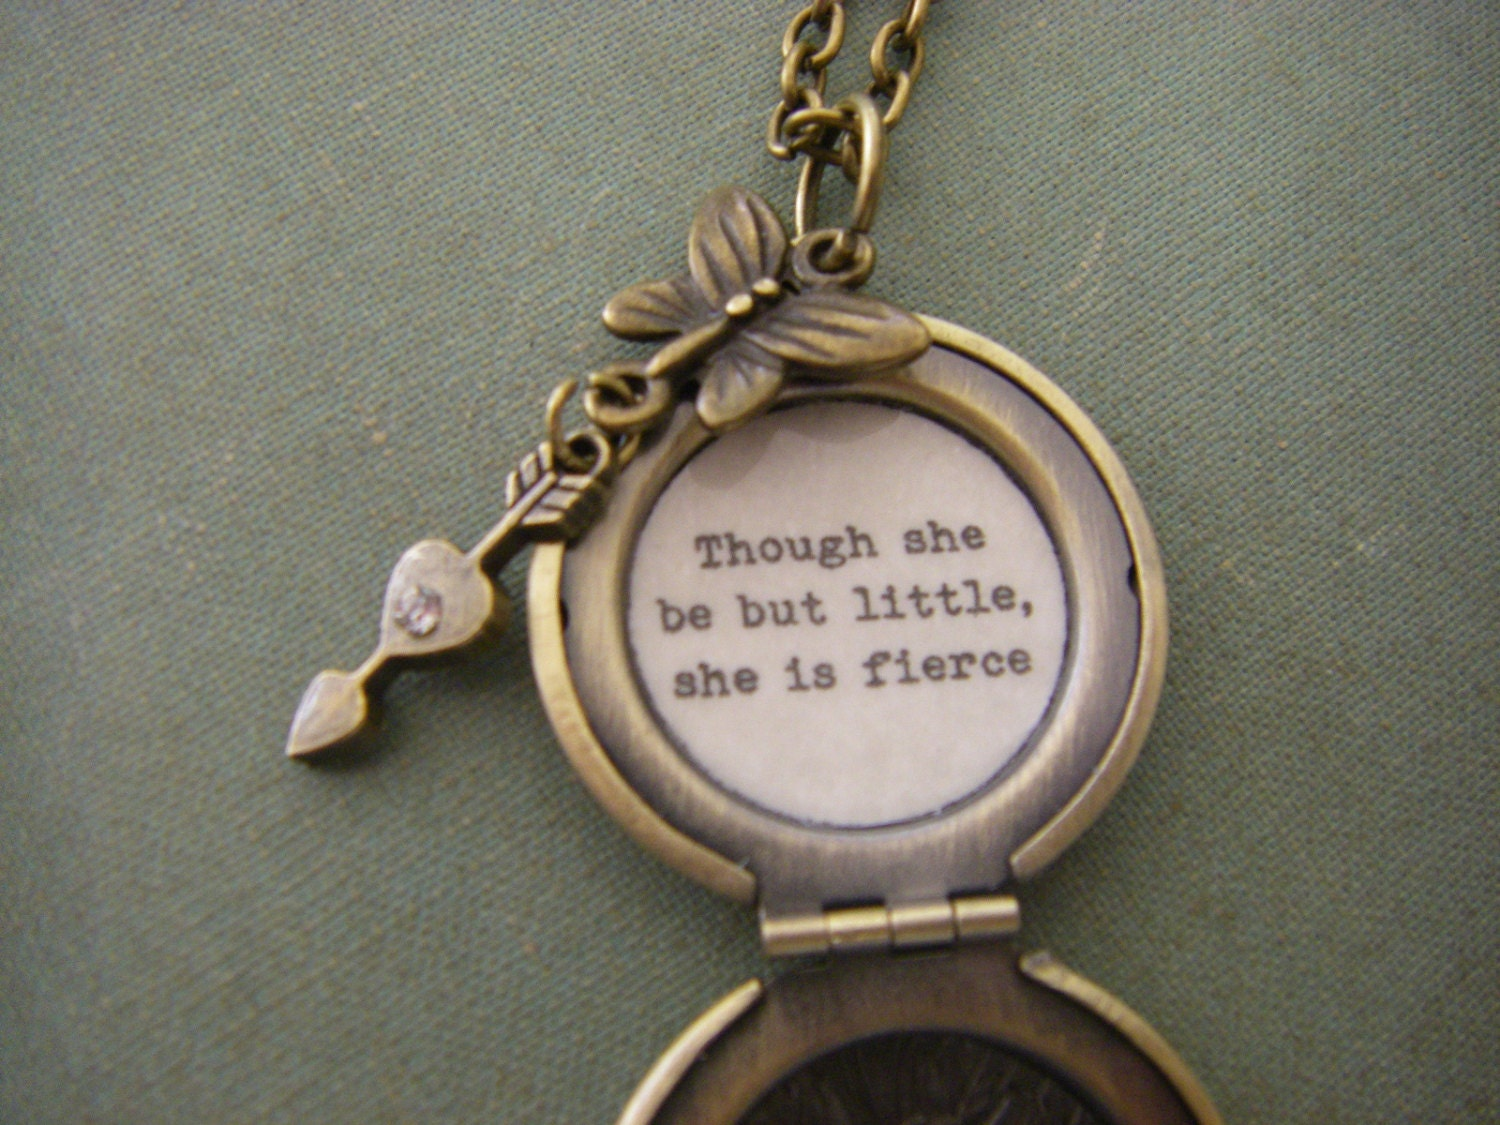 Shakespeare Quotes She May Be Small: Though She Be But Little She Is Fierce Necklace Shakespeare